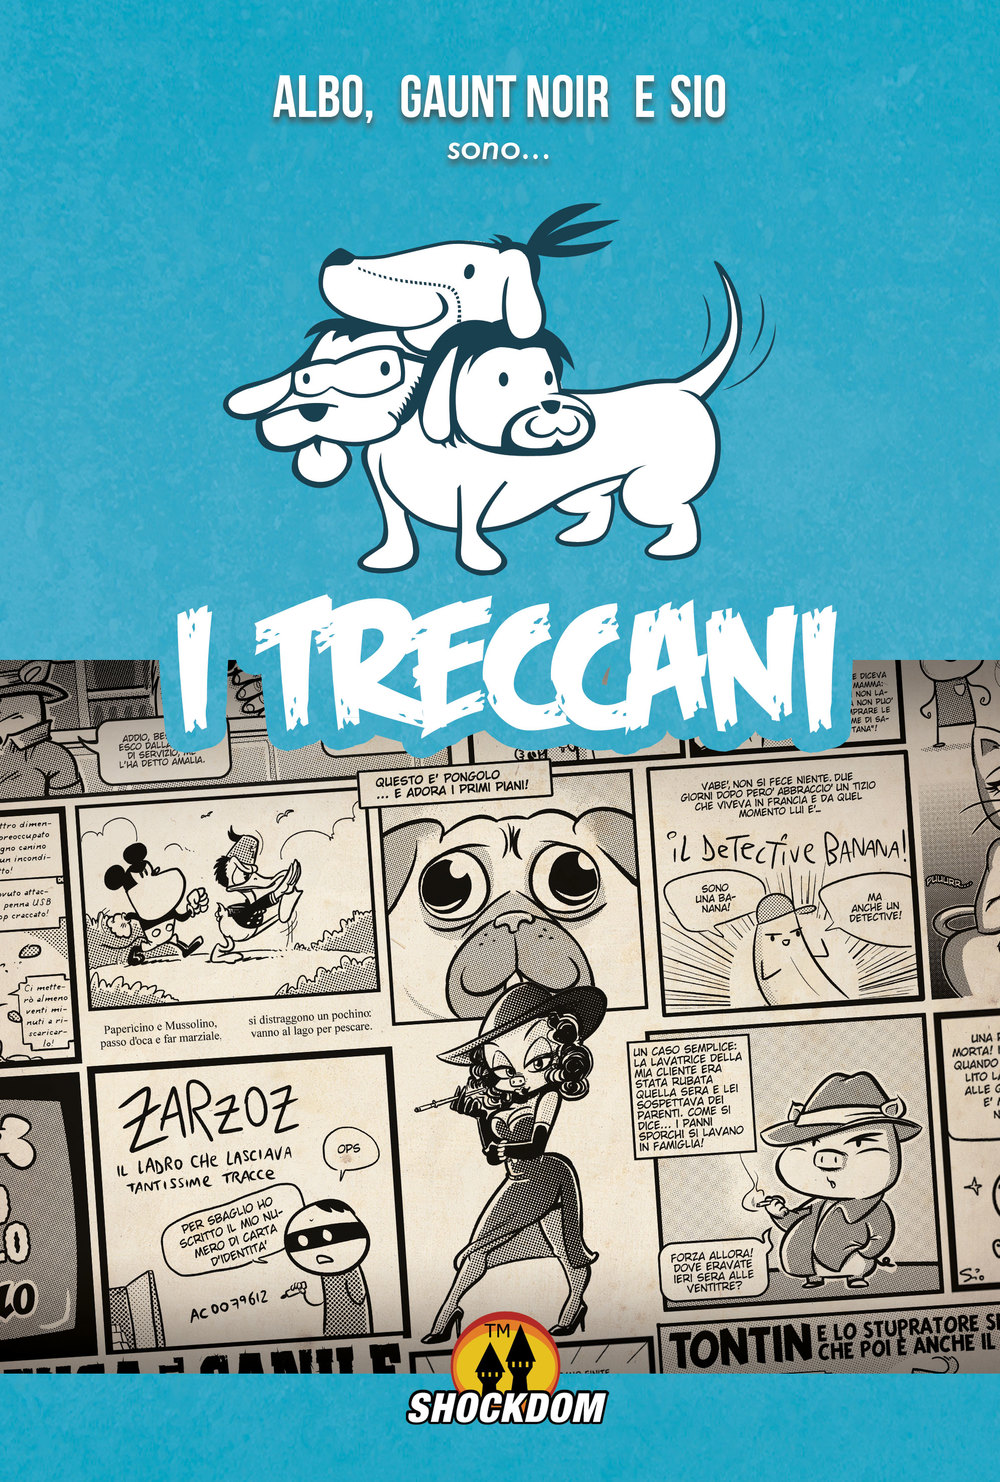 covertreccani.jpg